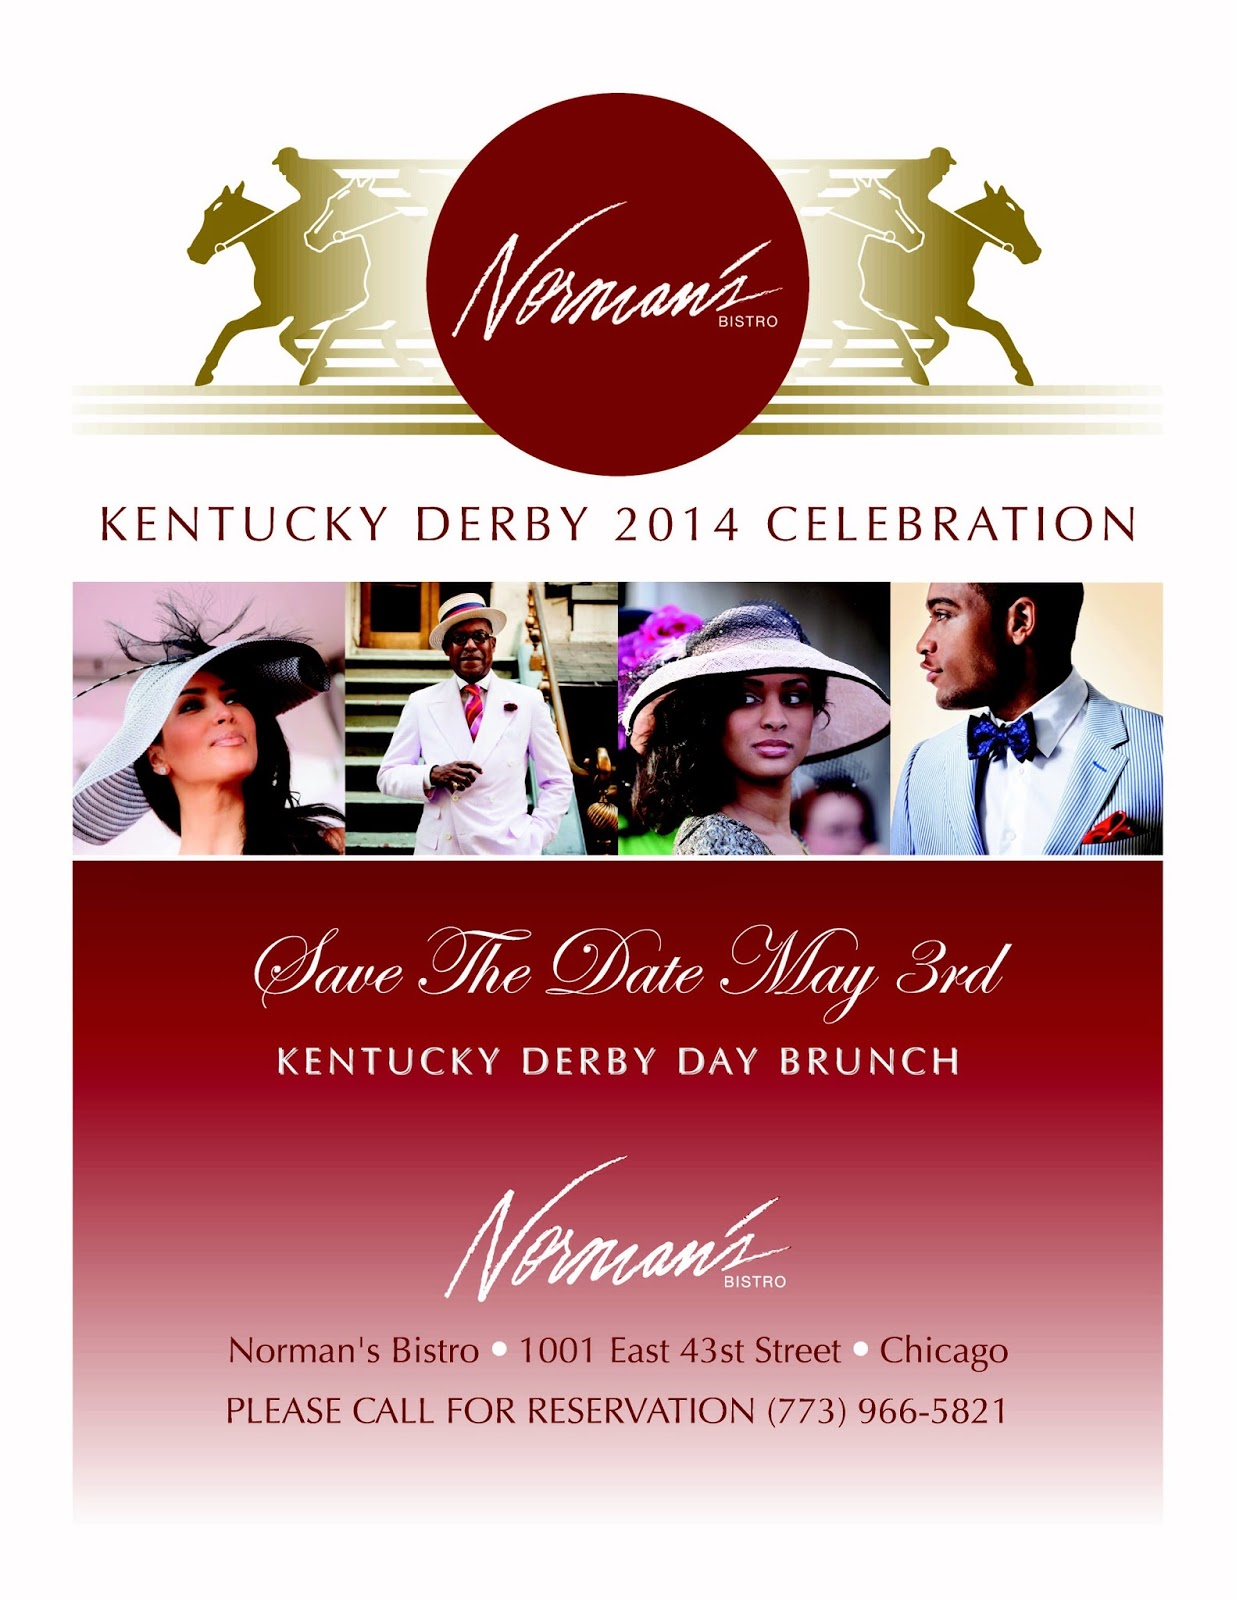 Normans Bistro Kentucky Derby Party Chicago